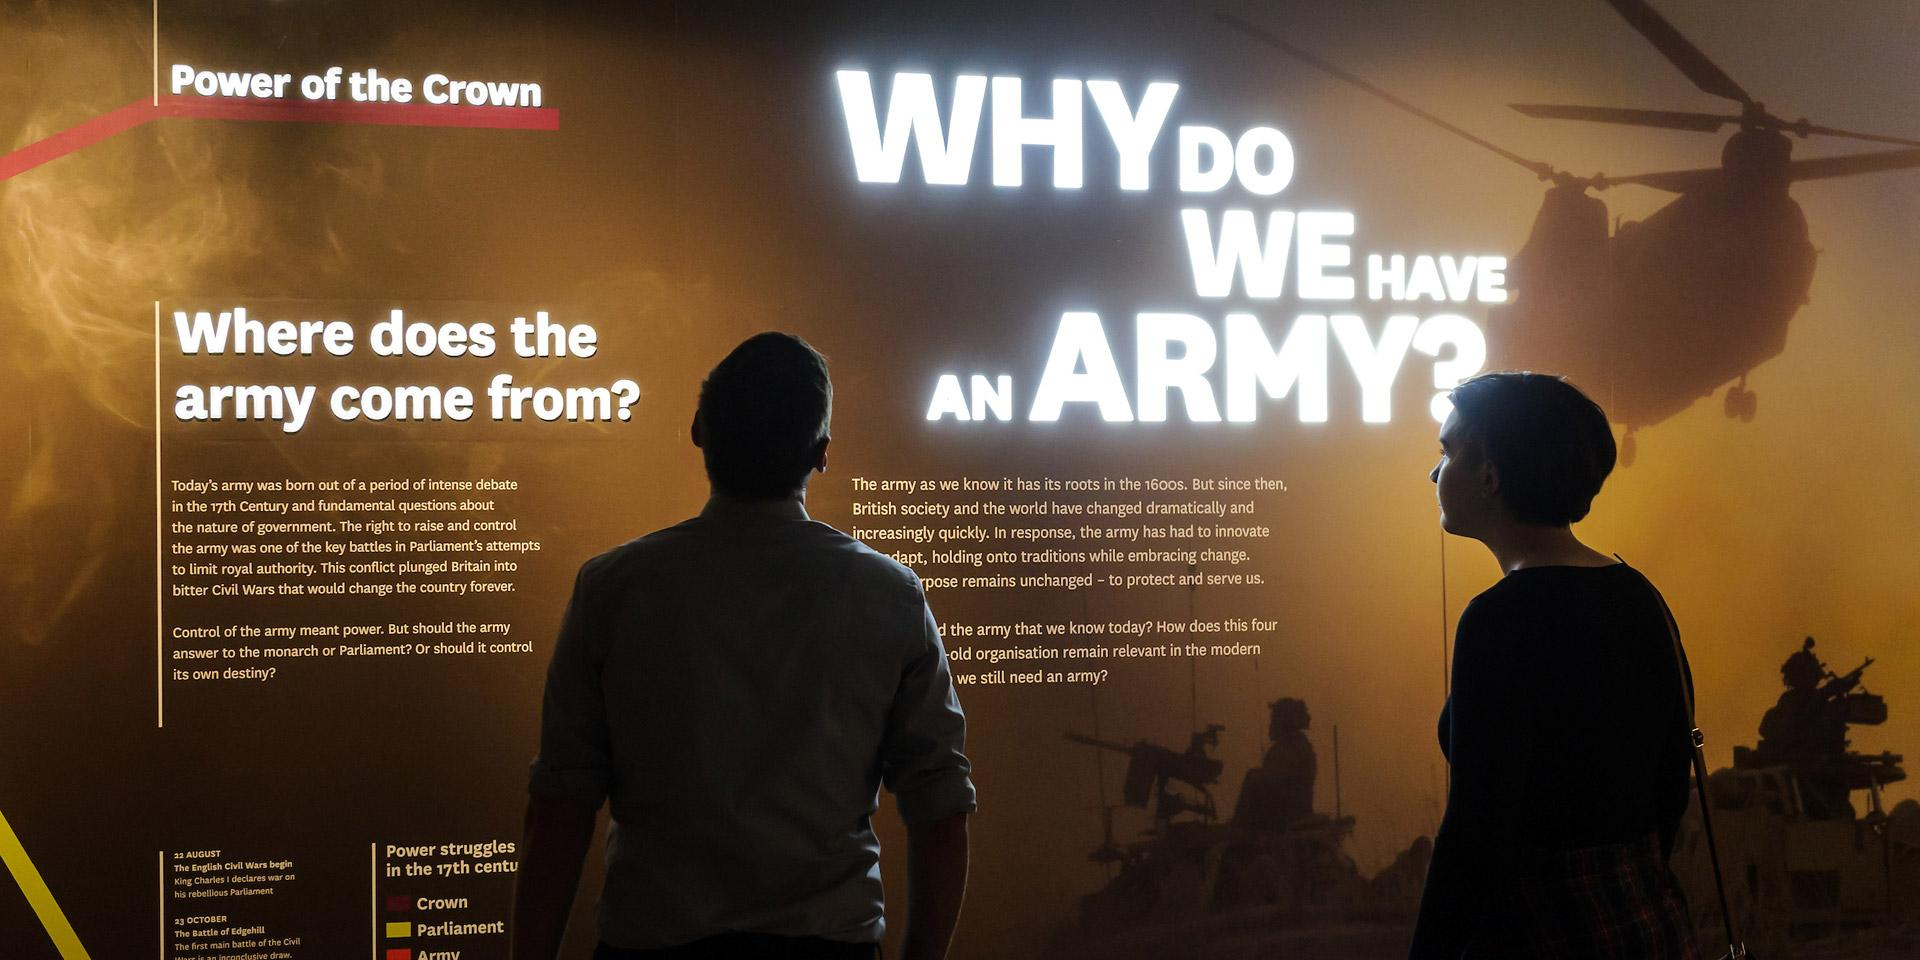 Display in Army gallery